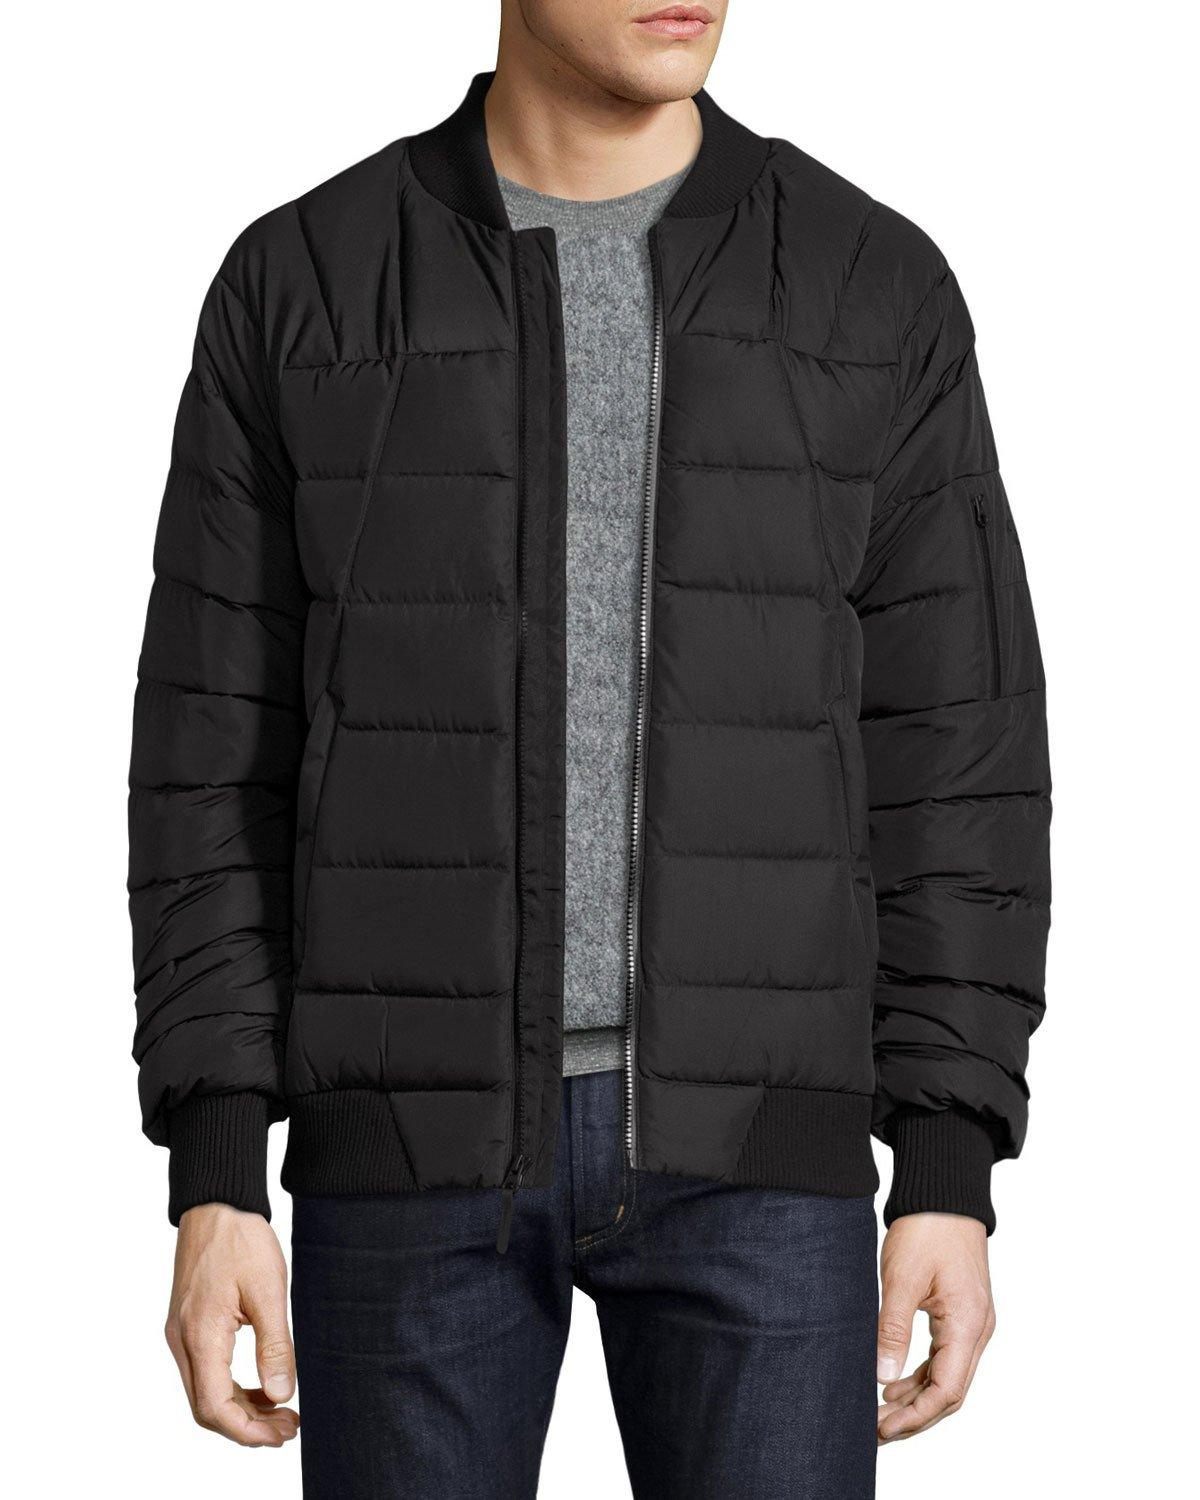 Lyst The North Face Kanatak Bomber Jacket In Black For Men